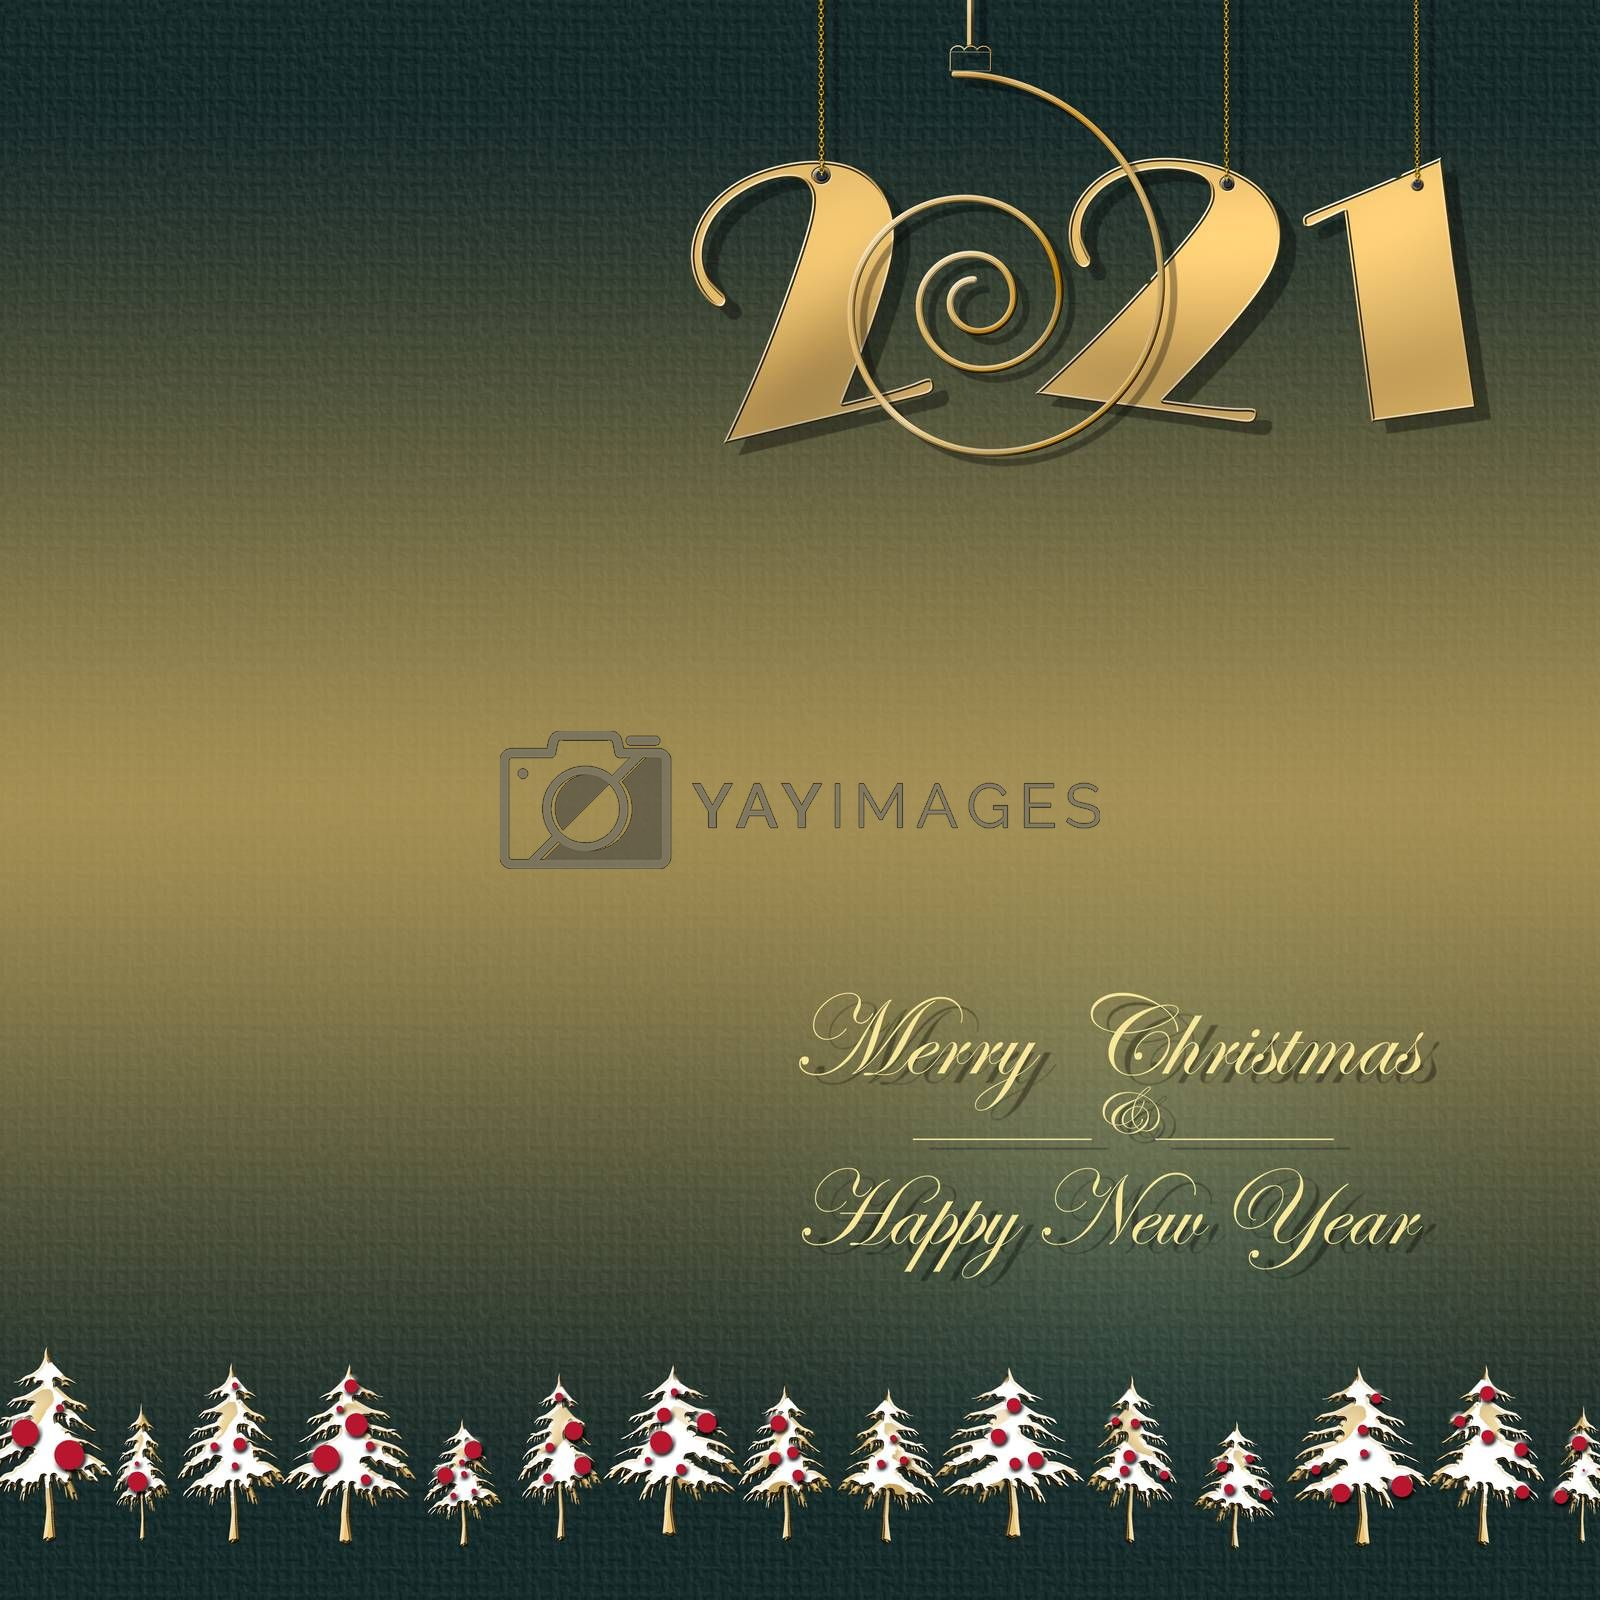 Luxury 2021 gold card with hanging 2021 digits on green gold background with christmas trees, text Merry Christmas Happy New Year. Banner, greeting cards, brochure, print. Copy space, 3D illustration